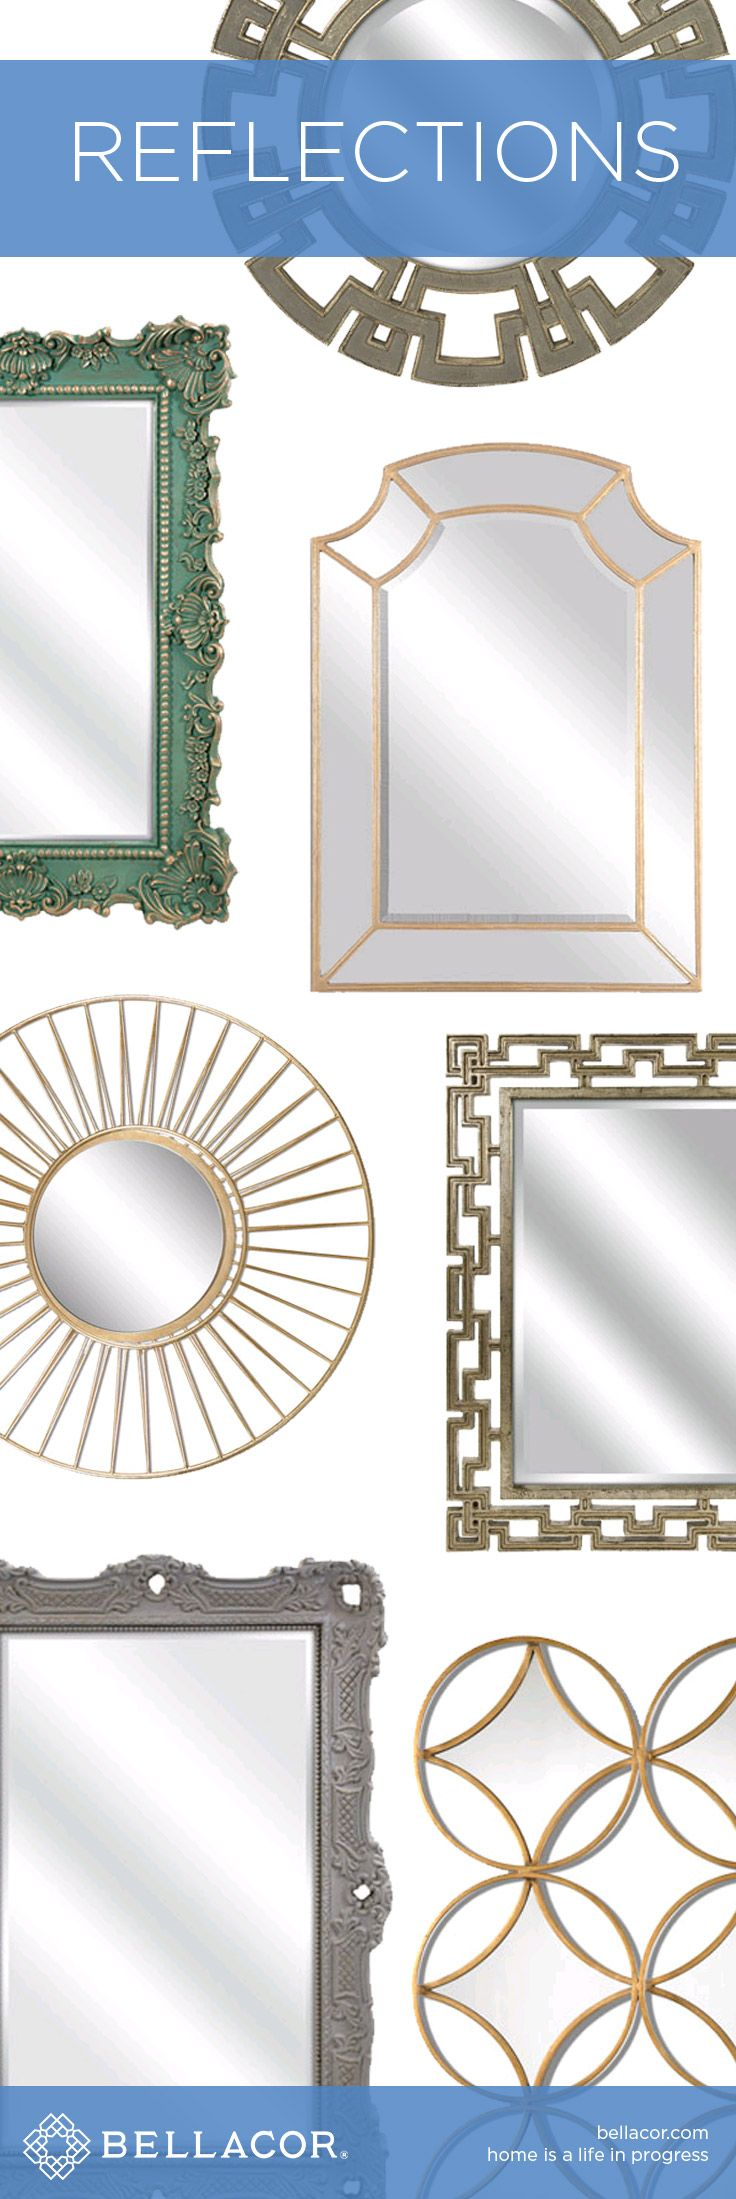 Shop Mirrors in All Shapes and Sizes at http://www.bellacor.com/